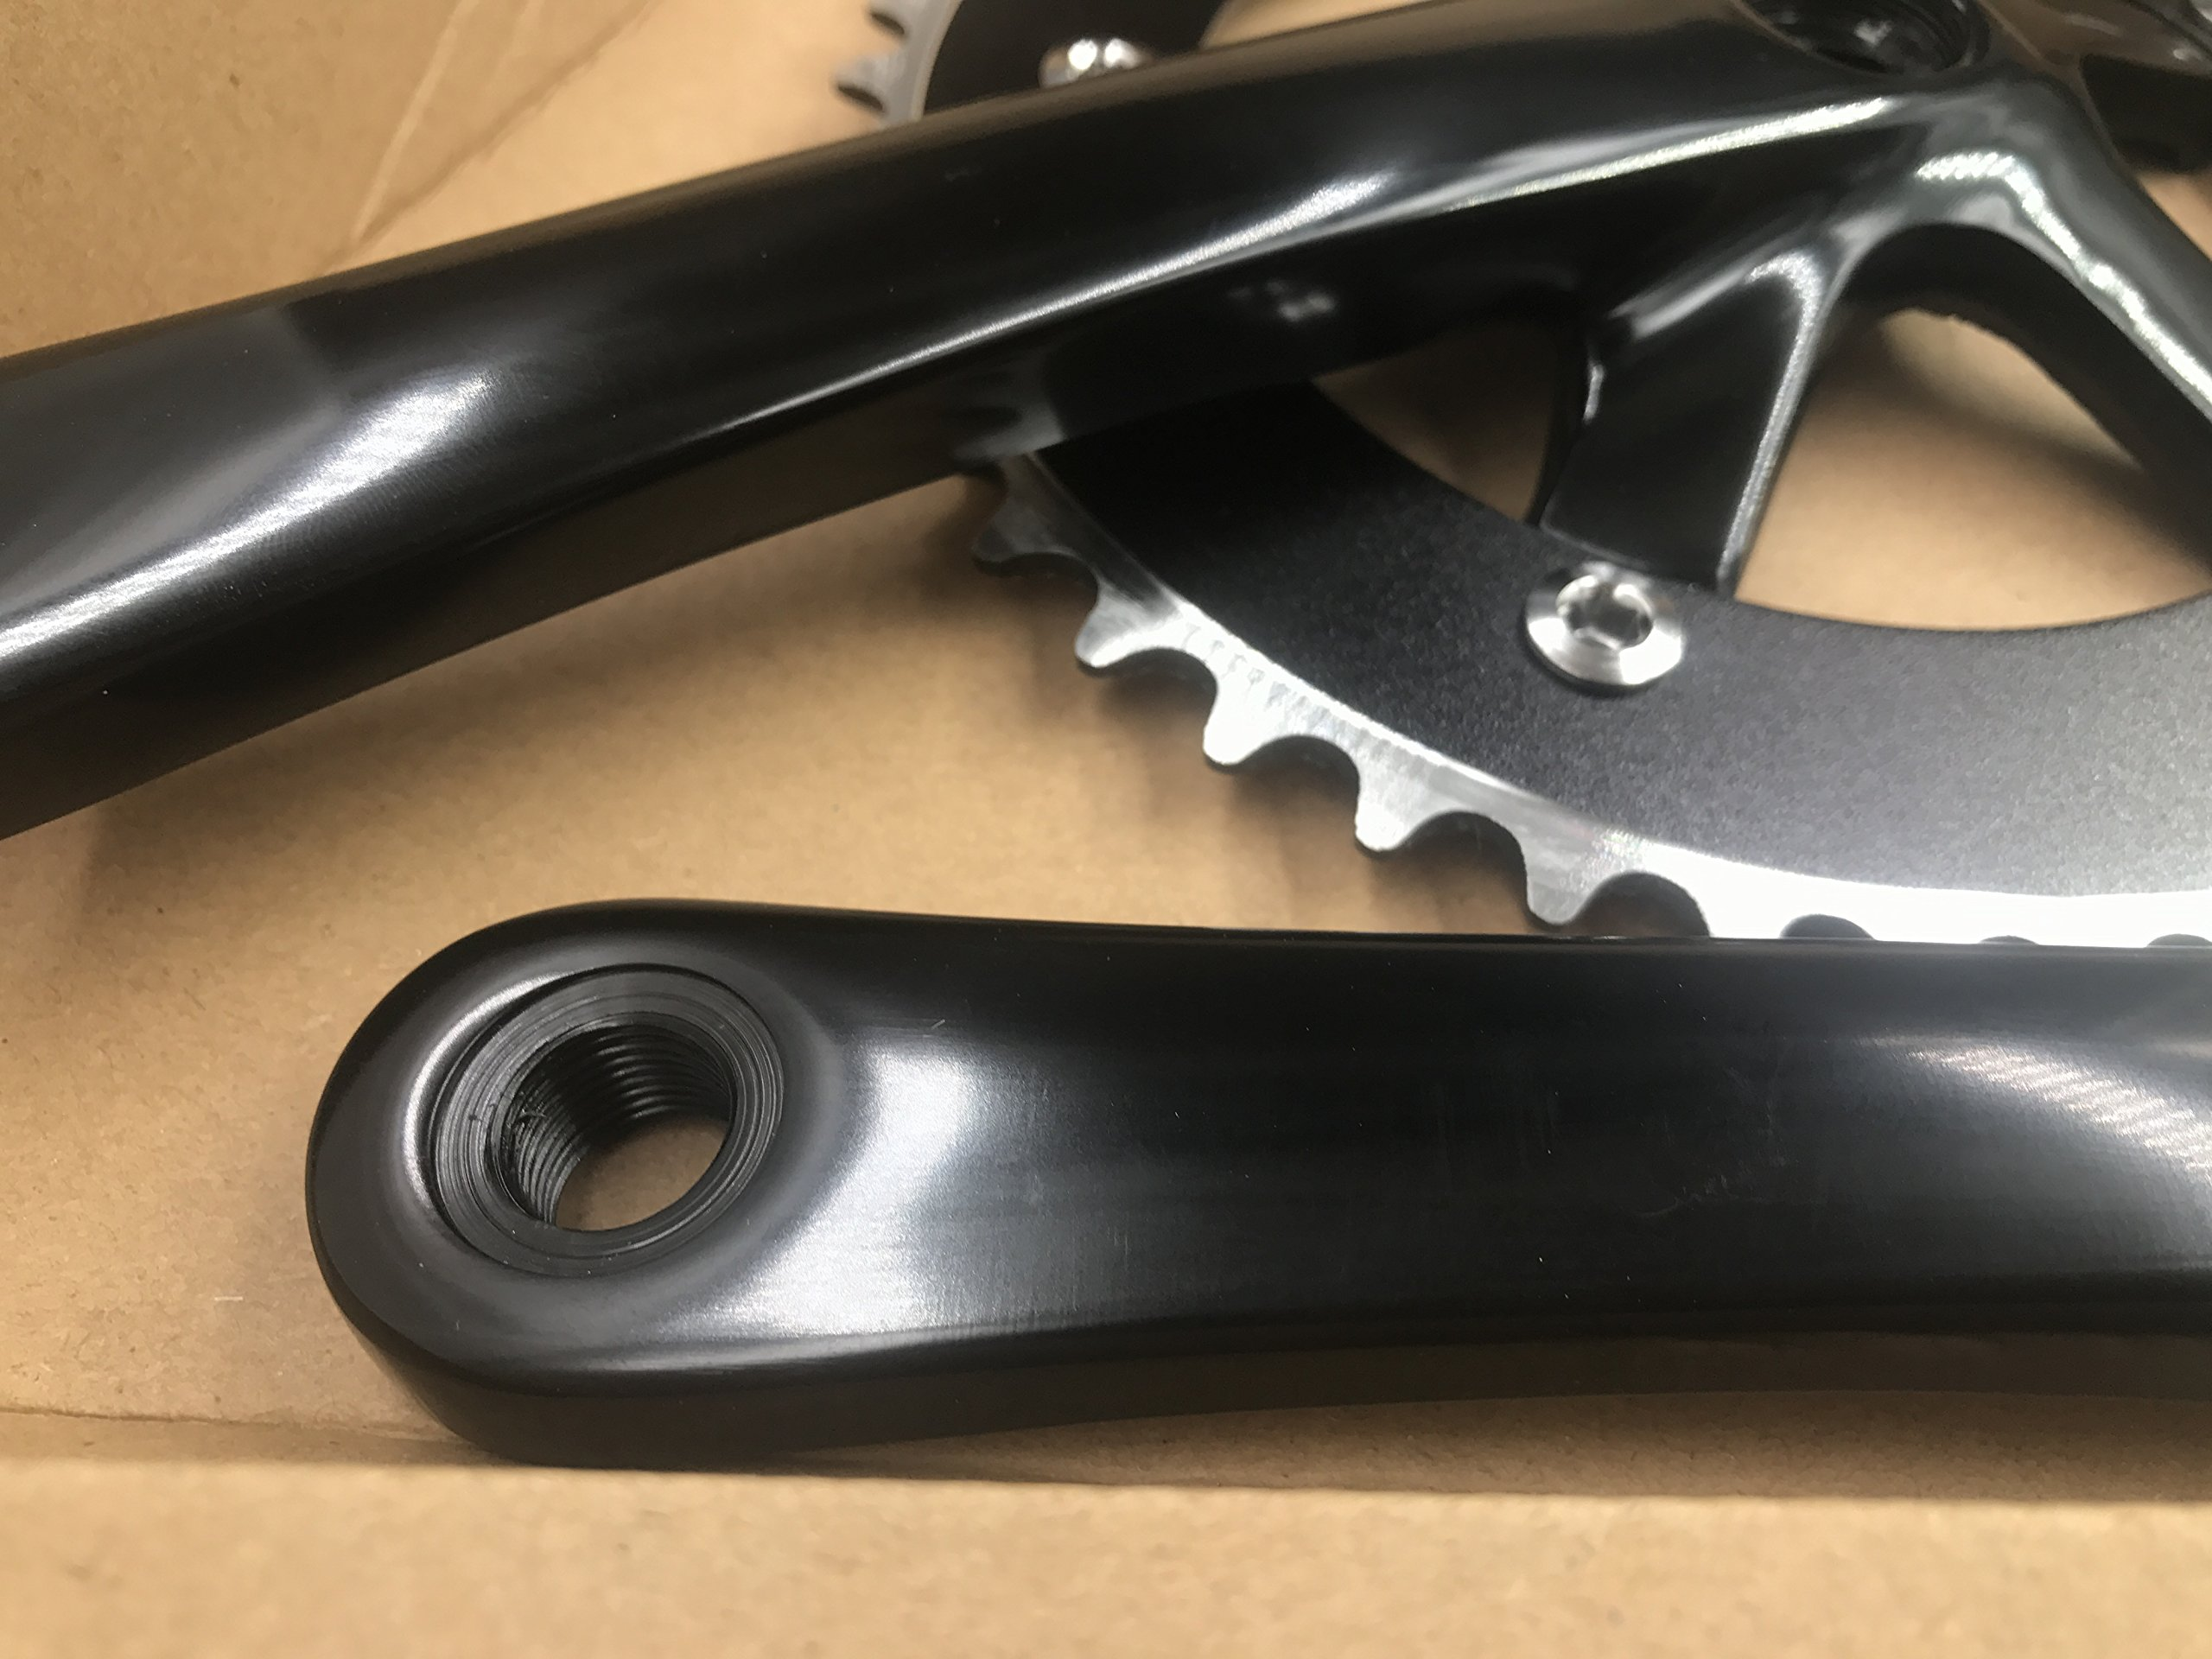 Single Speed Crankset 44T 165mm Crankarms 130 BCD Crankset for Mountain Road Bike Fixed Gear Bicycle(Square Taper, Black) (44T, Sprocket) by CDHPOWER (Image #3)